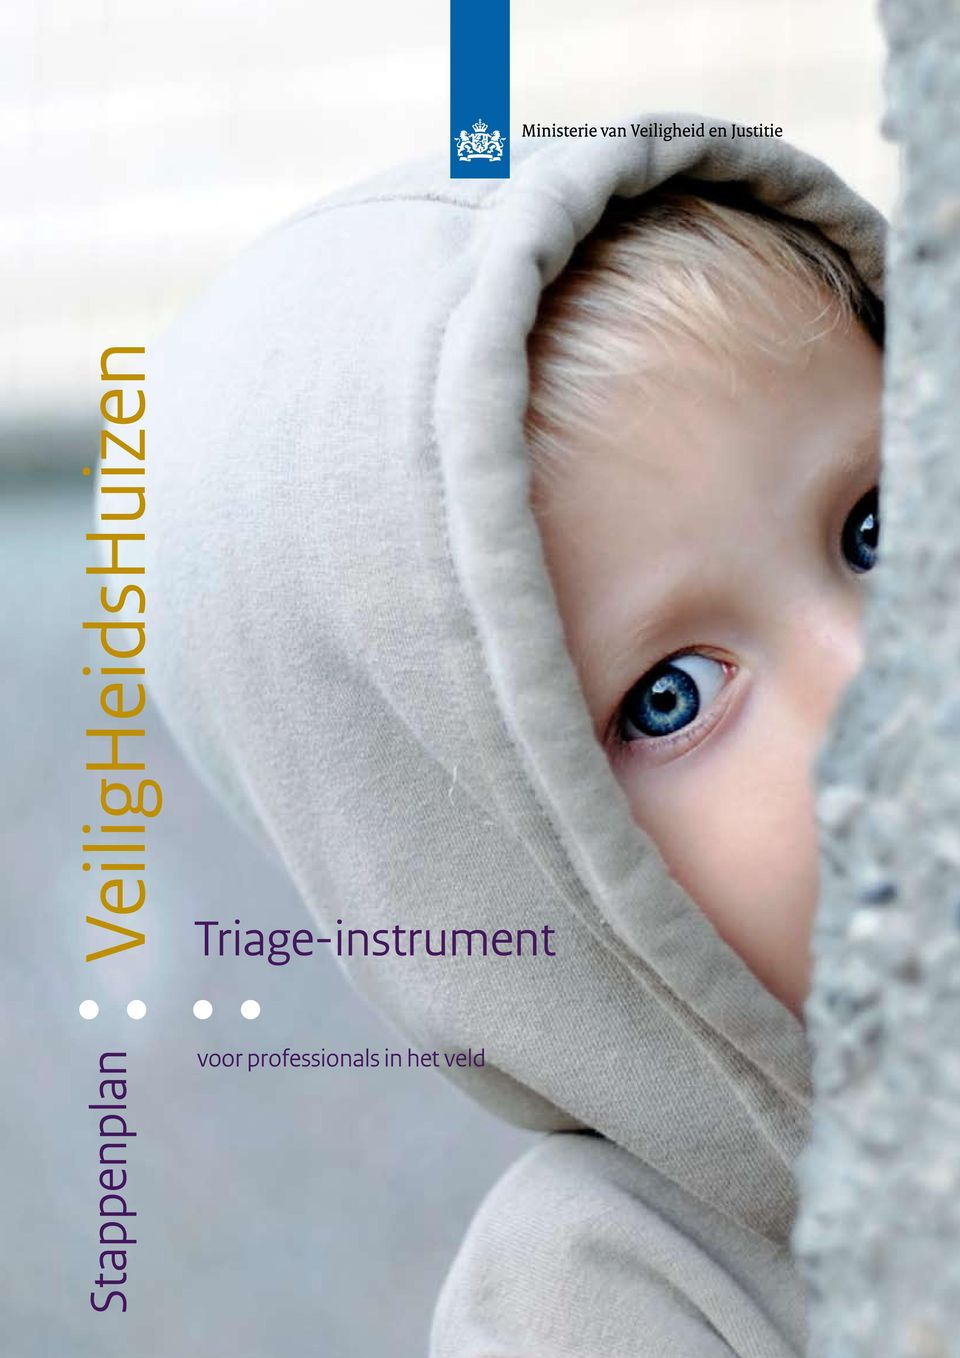 Triage-instrument